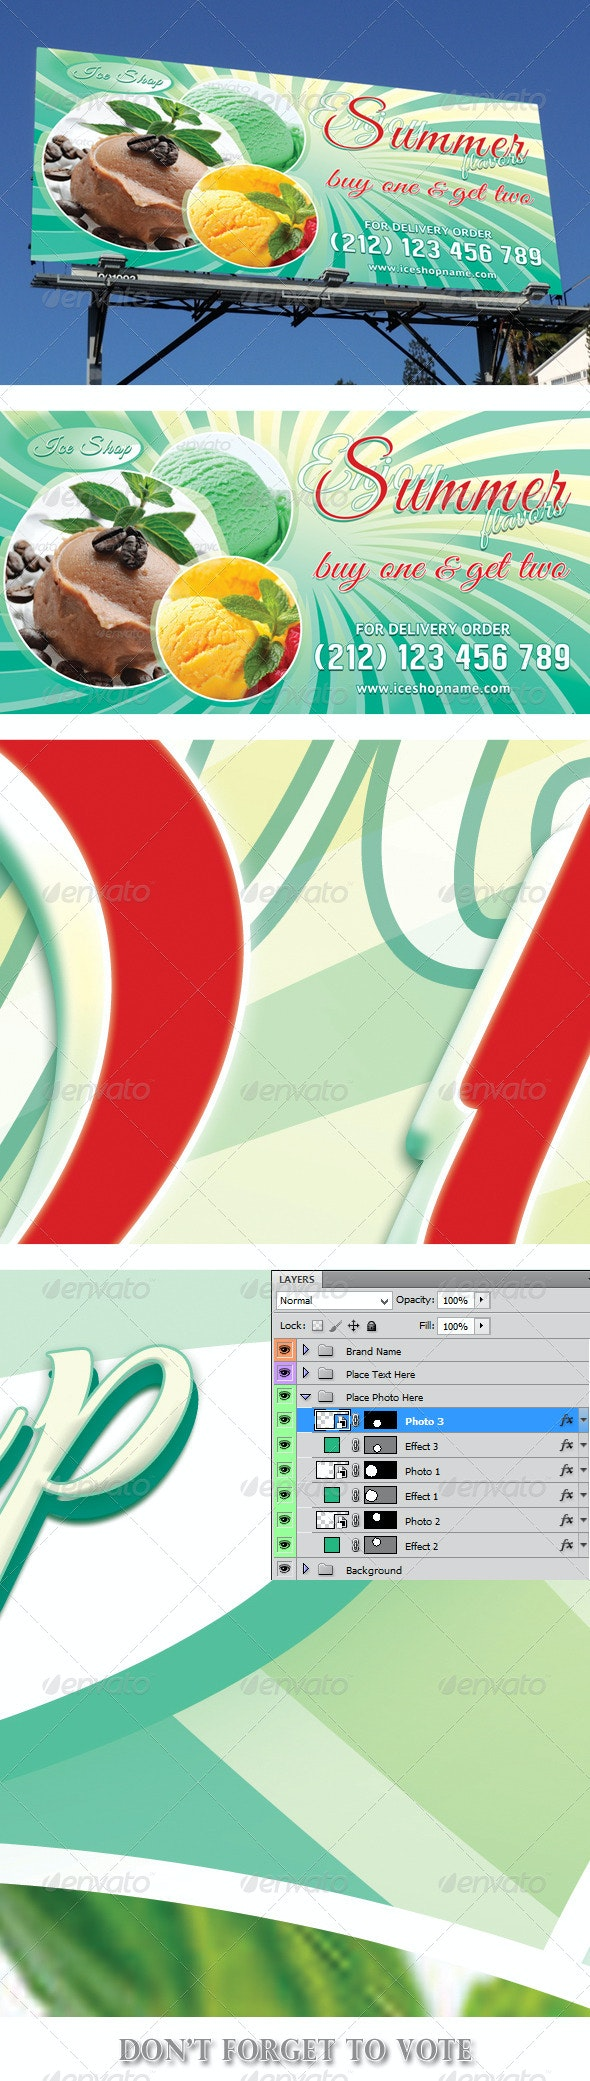 Summer Flavors Outdoor banner 25 - Signage Print Templates